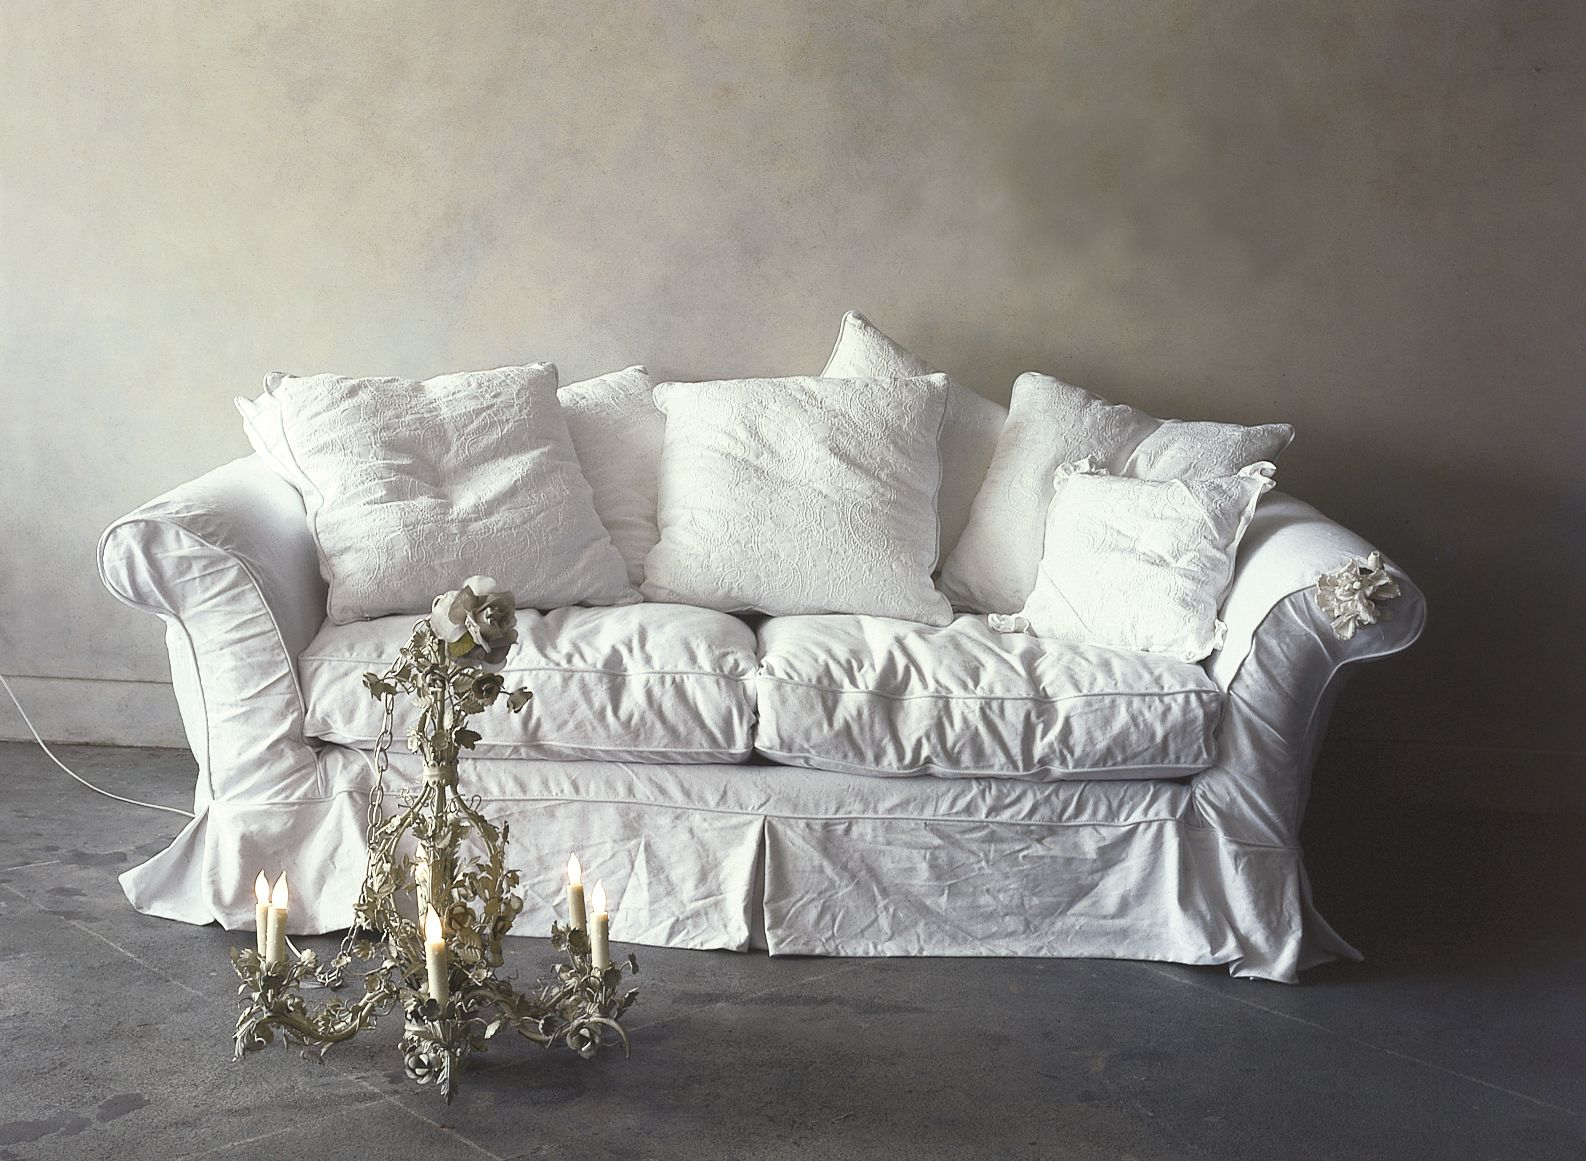 floris sofa, the beauty of imperfection and mushy rumples.